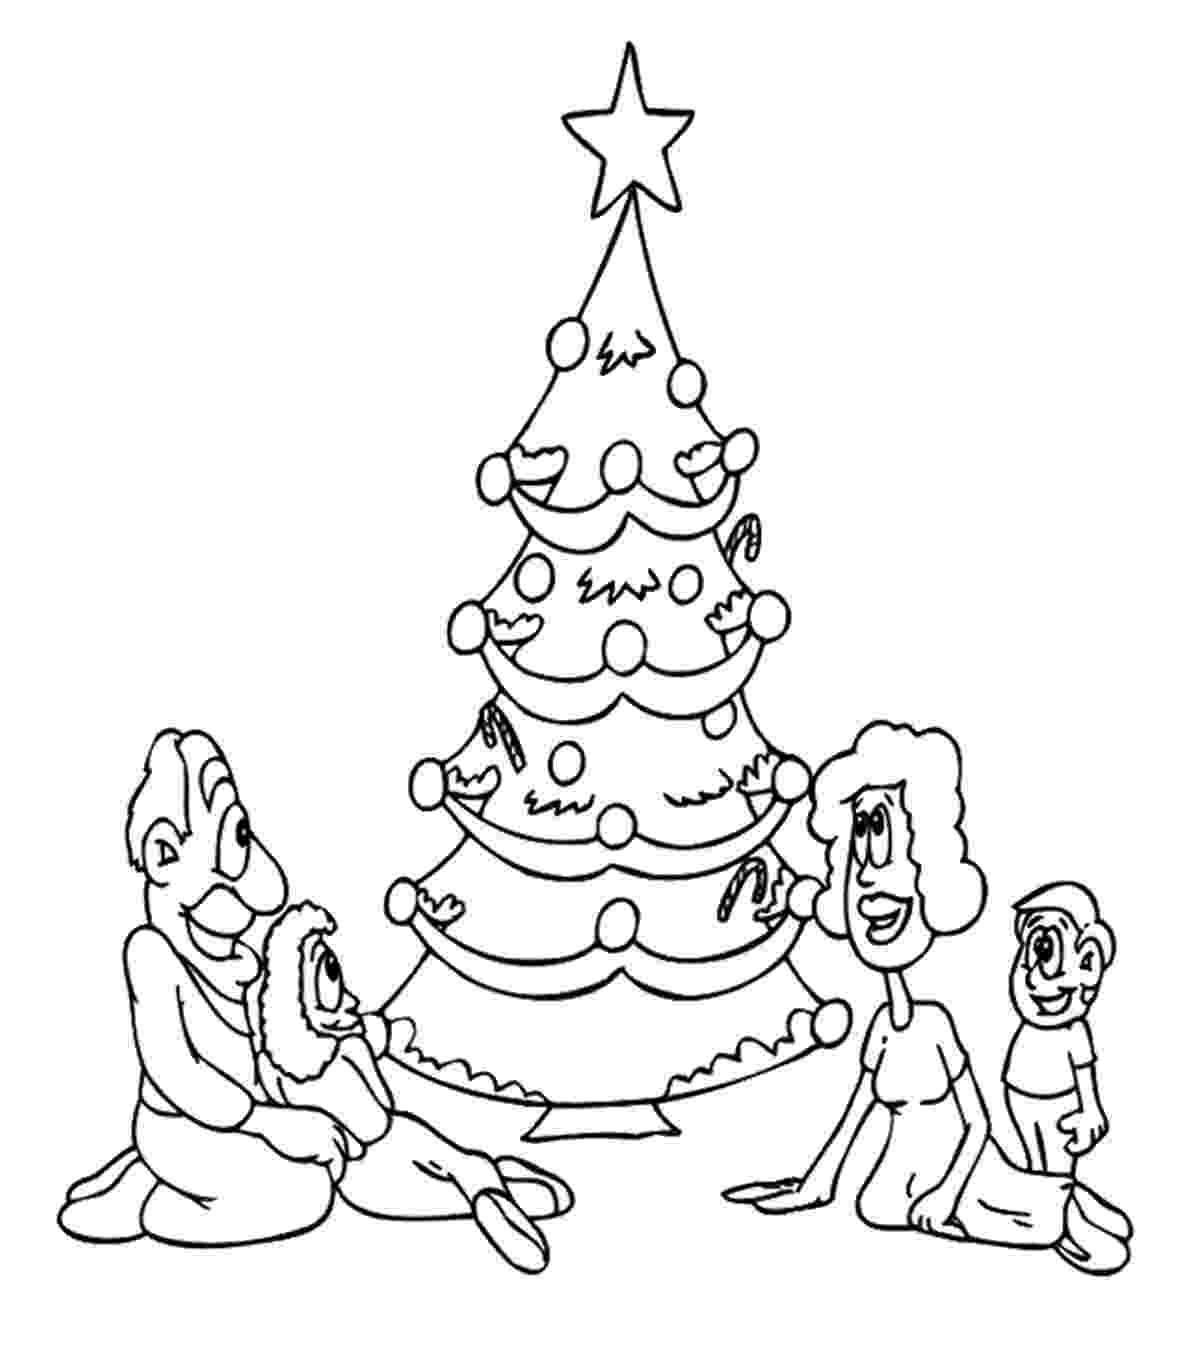 coloring pages christmas tree christmas tree coloring page wallpapers9 pages coloring tree christmas